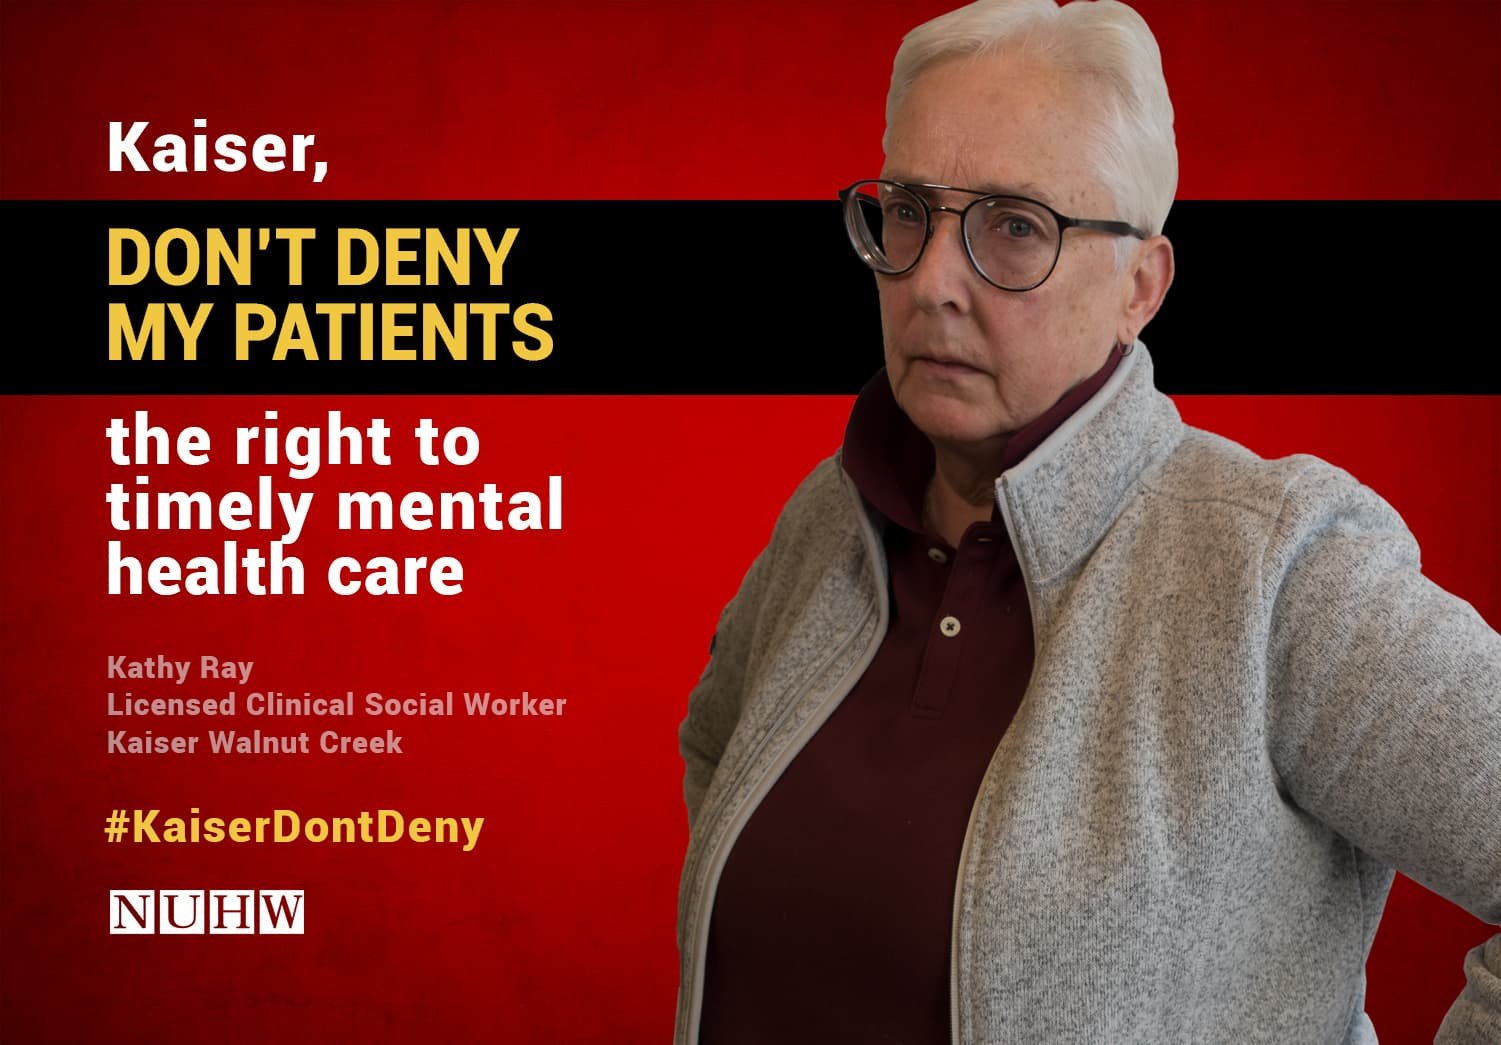 Kaiser, don't deny my patients the right to timely mental health care. -- Kathy Ray, Licensed Clinical Social Worker, Kaiser Walnut Creek